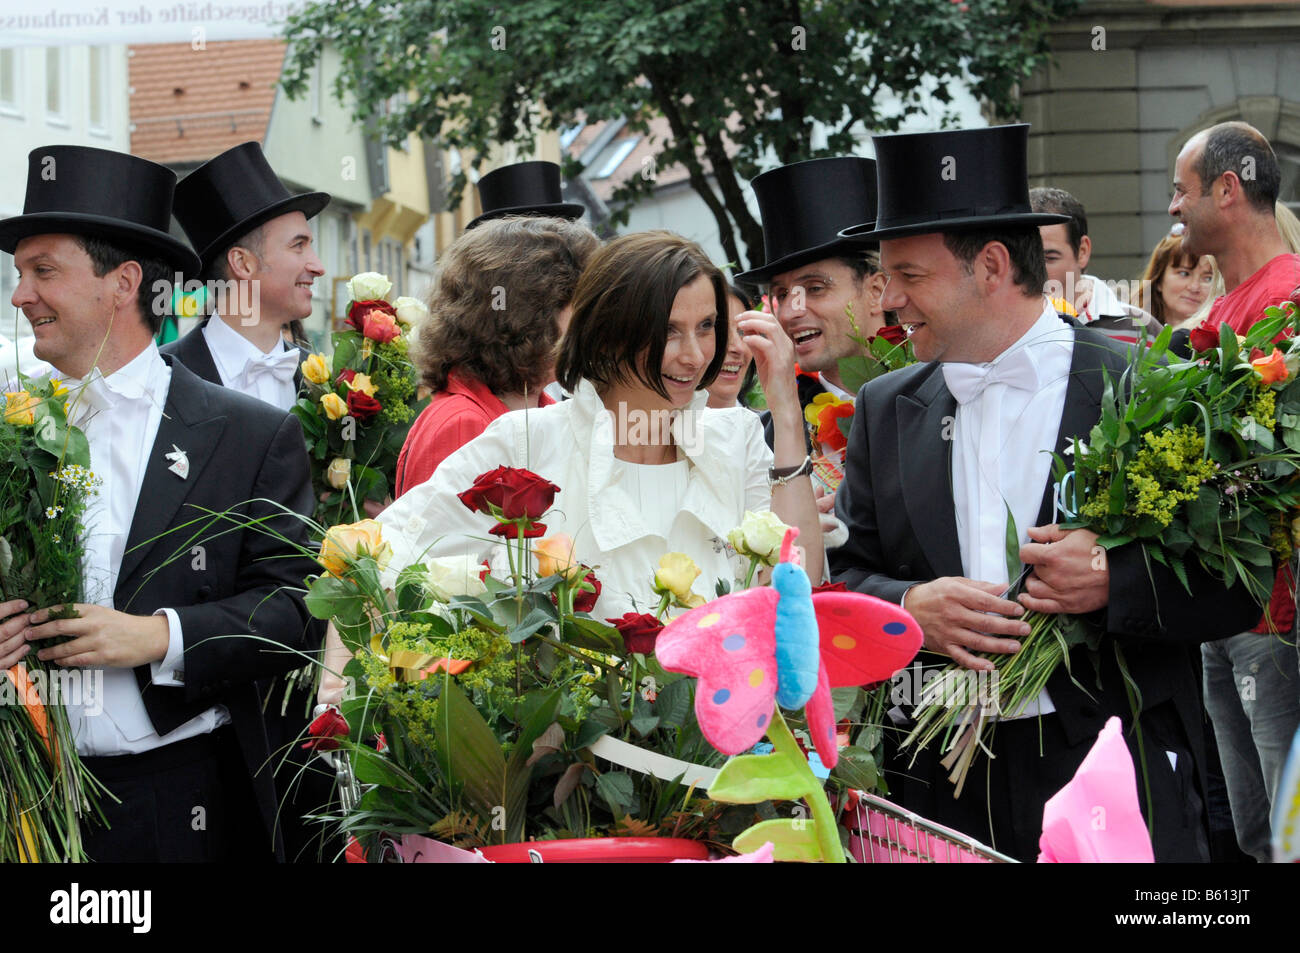 Gmuender city festival, parade of the 40-year-old people, Schwaebisch Gmuend, Baden-Wuerttemberg - Stock Image